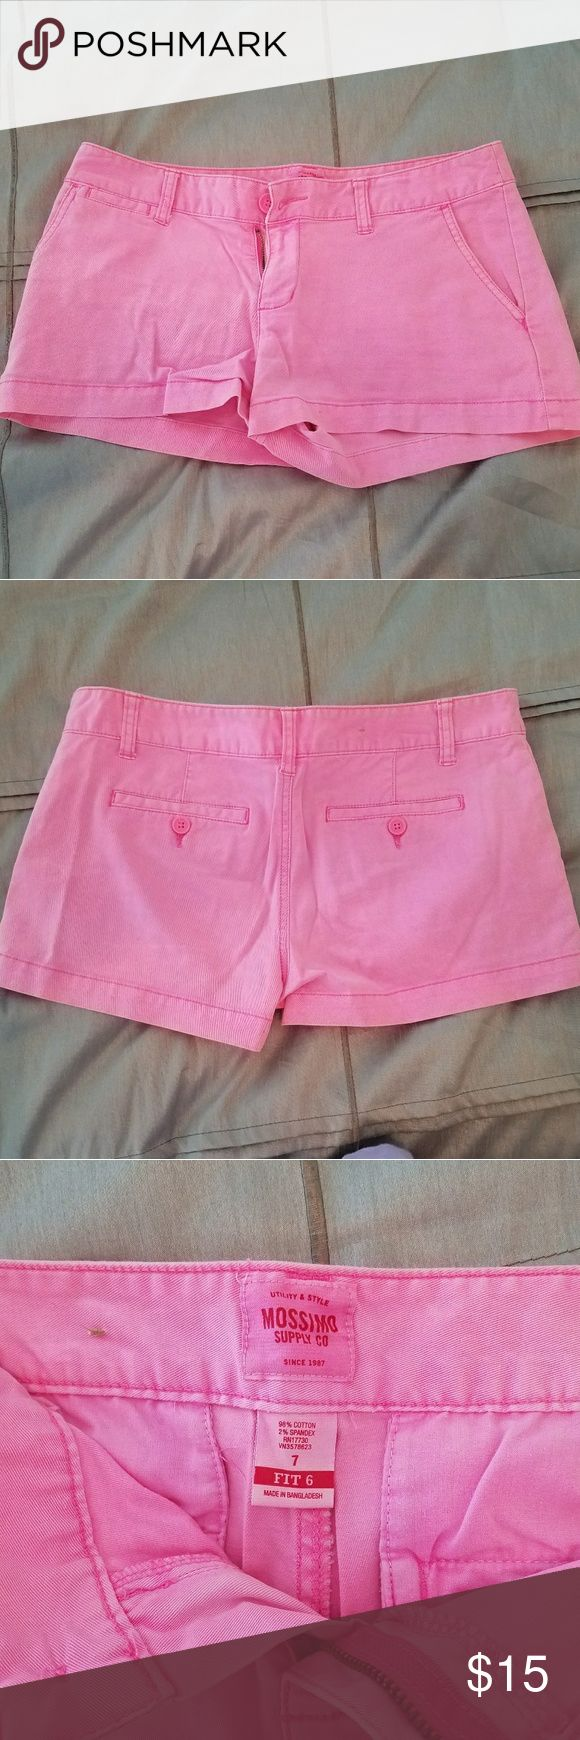 Mossimo neon shorts These shorts are Mossimo and are a neon pink. Mossimo Supply Co Shorts